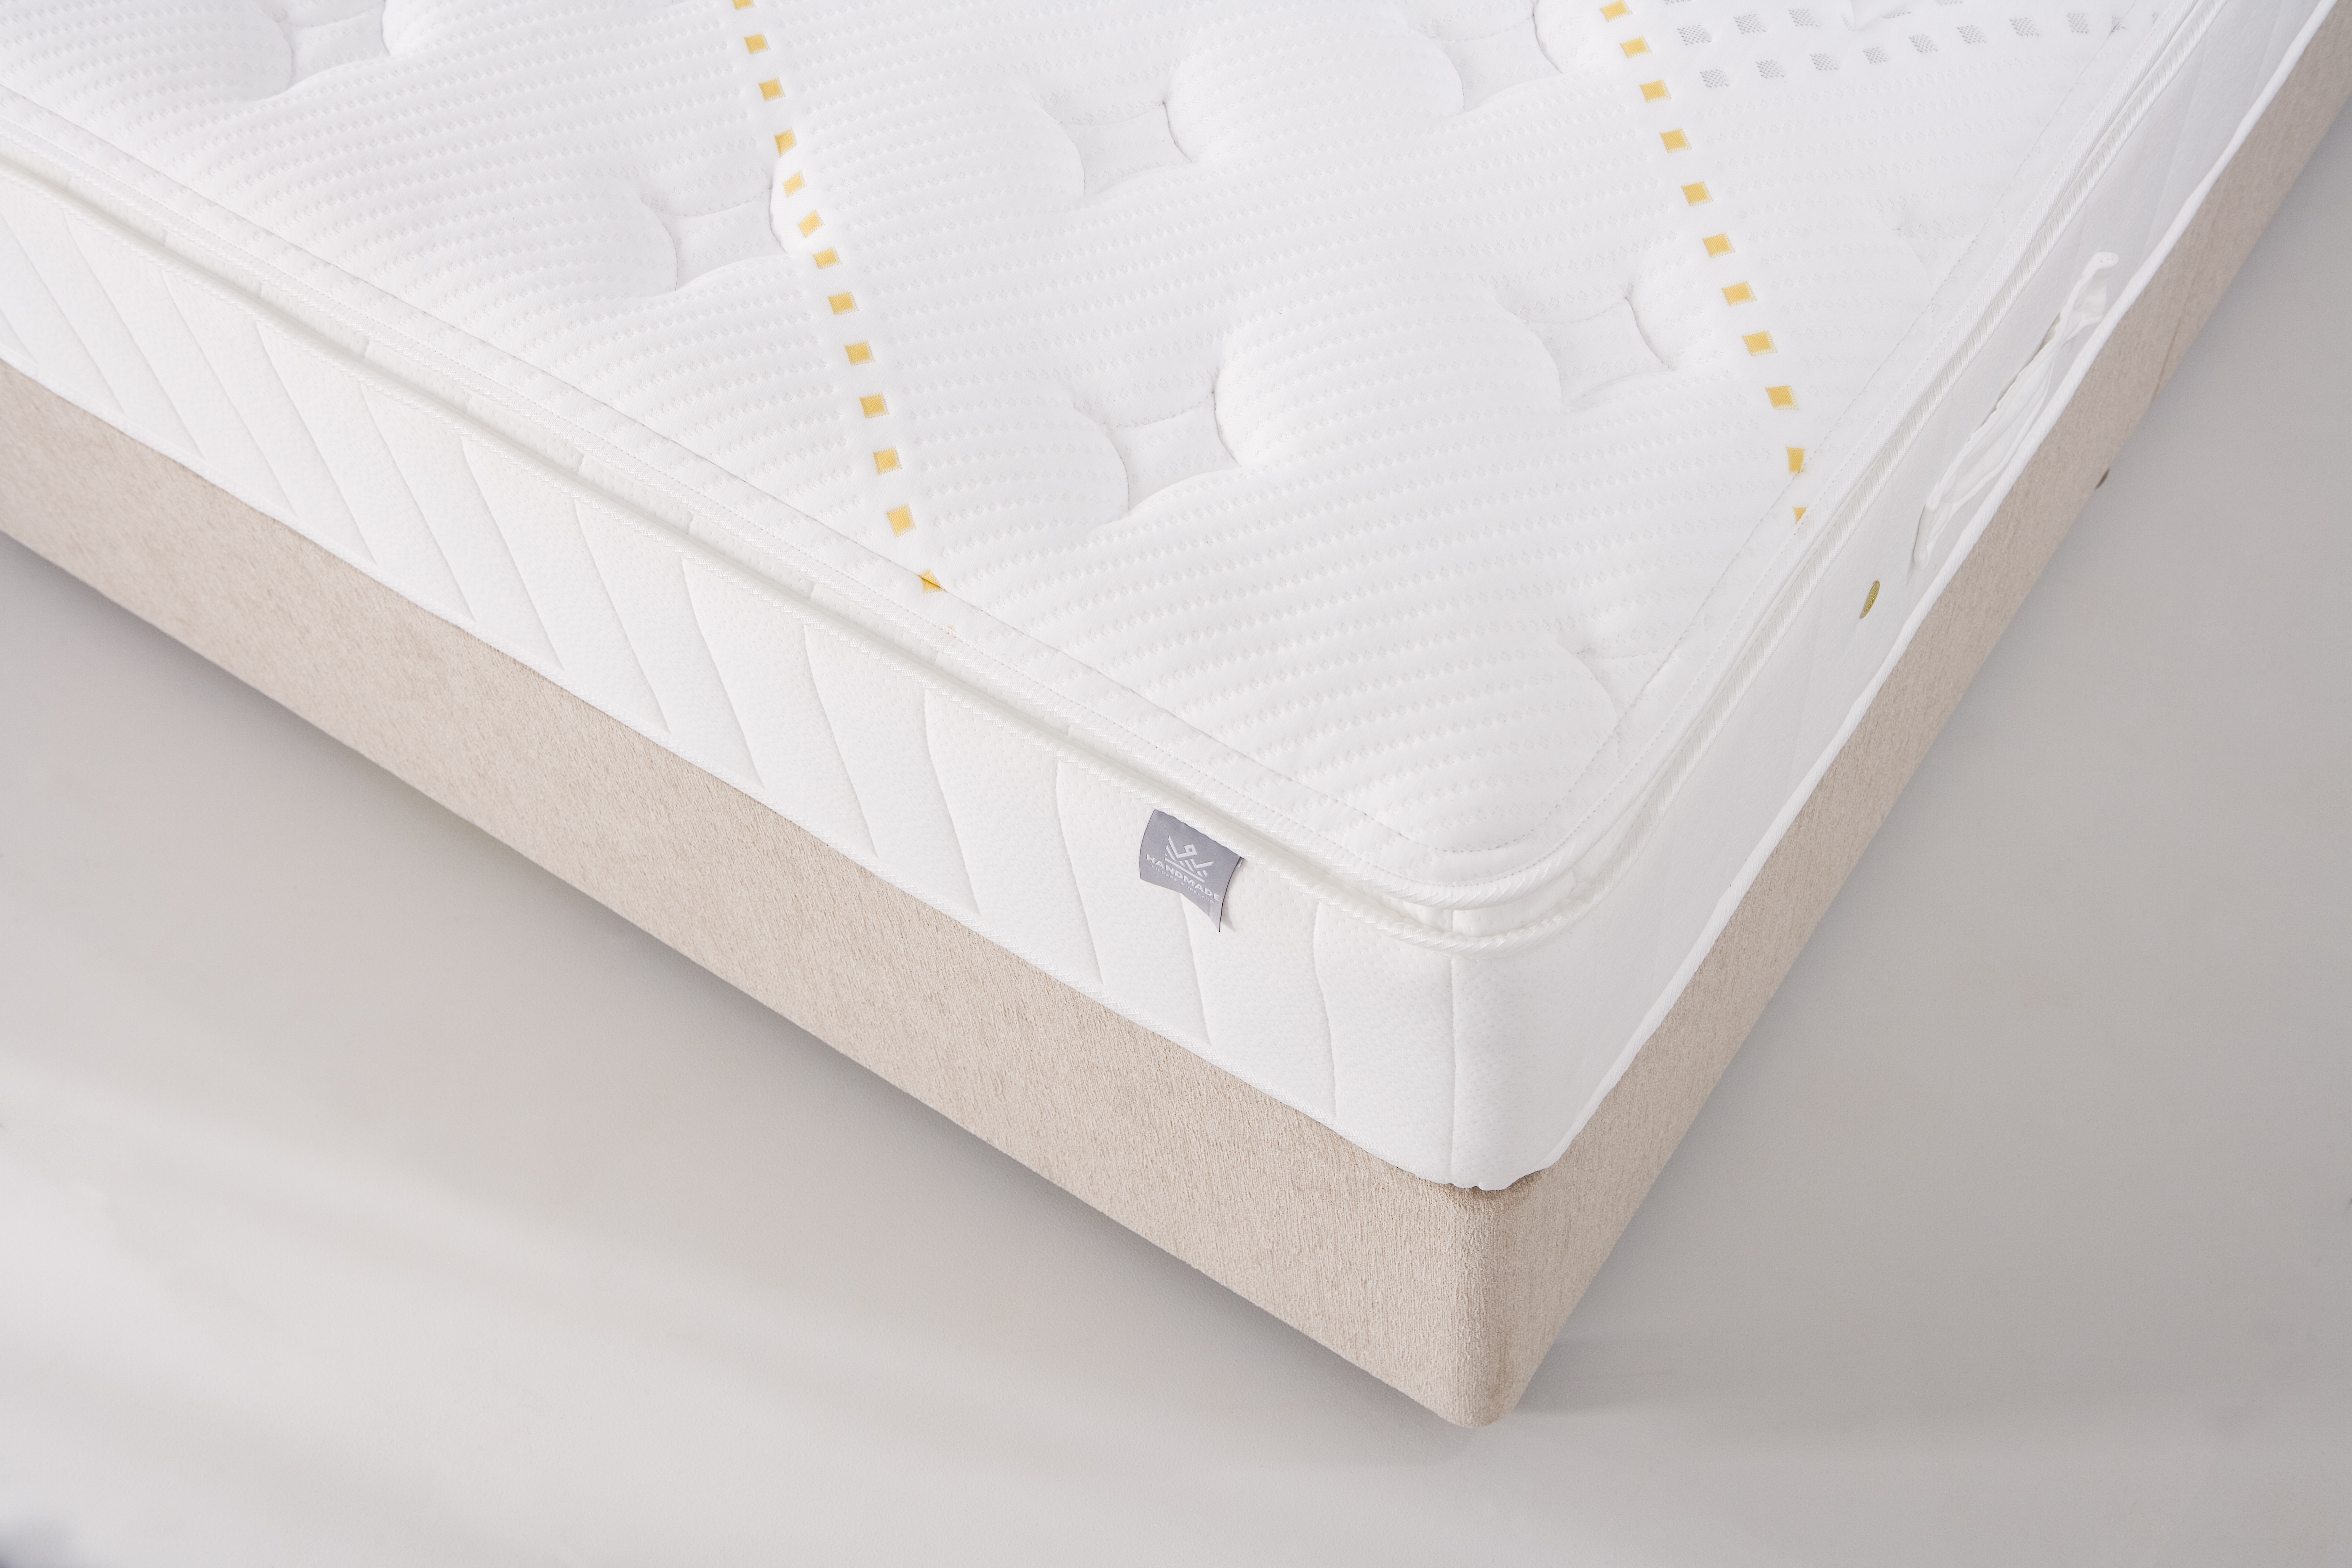 KING KOIL SPINAL POCKET PILLOW TOP - CORNER